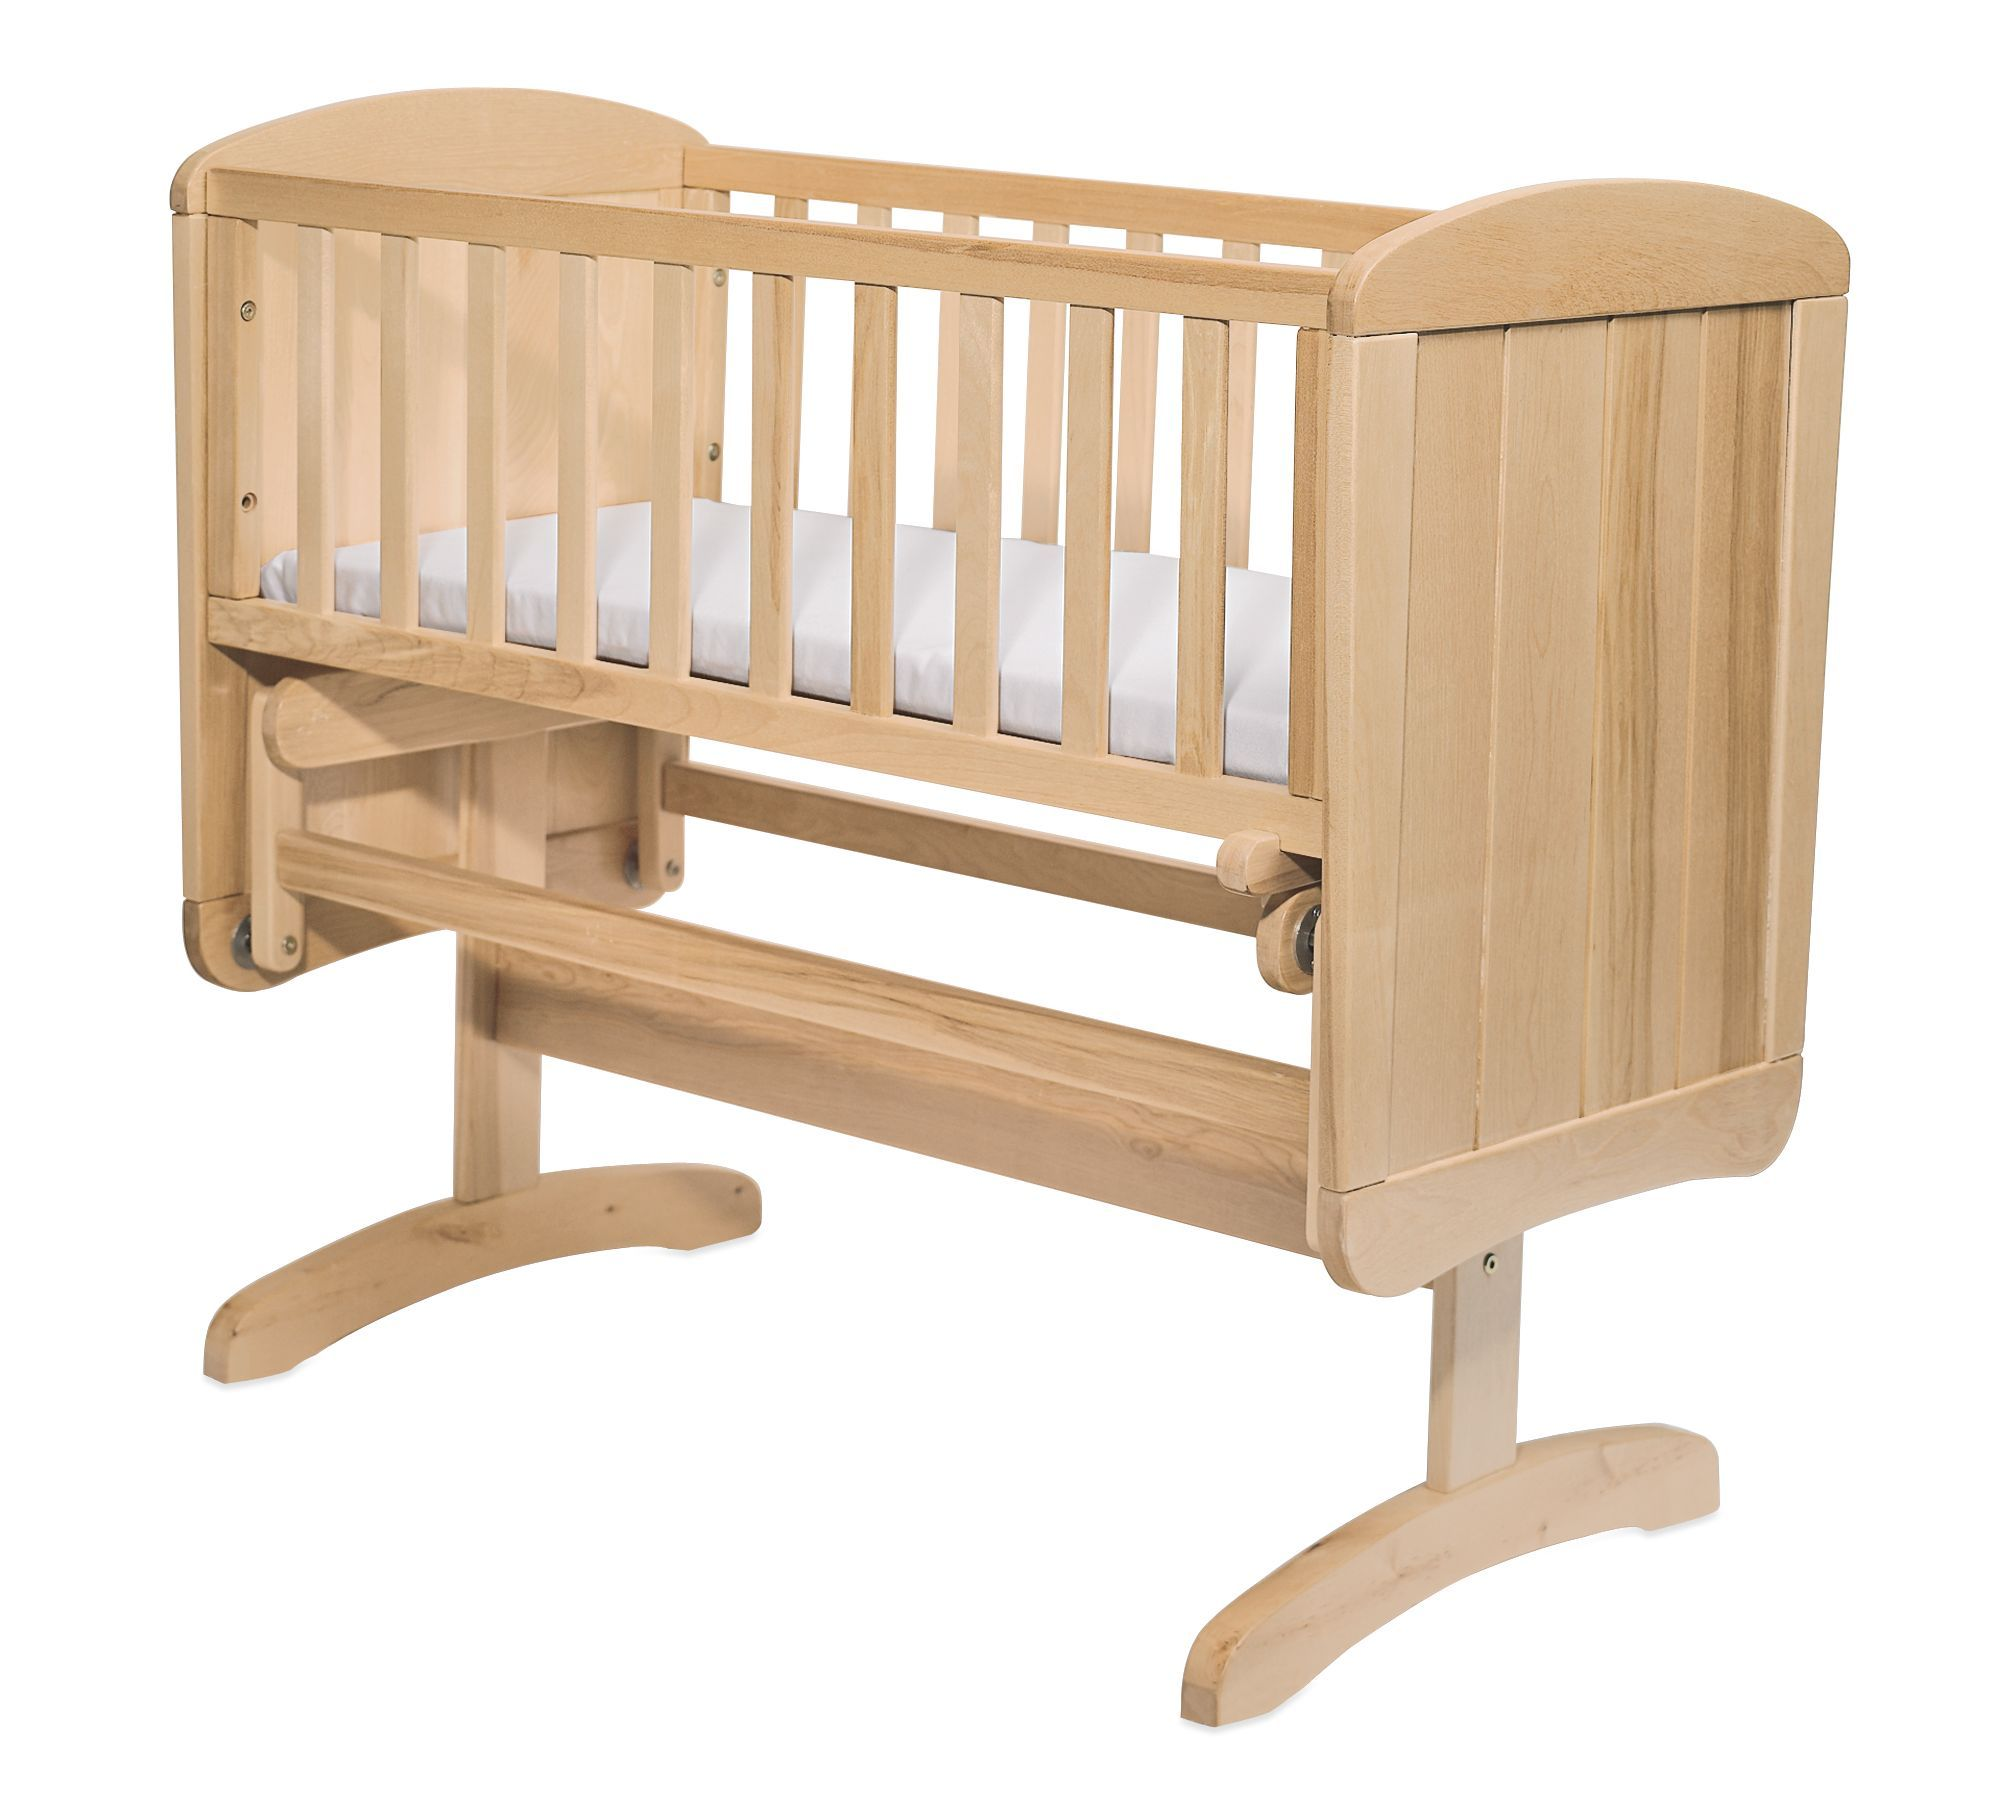 Crib for sale sulit com - Gallery Of Glider Crib For Sale